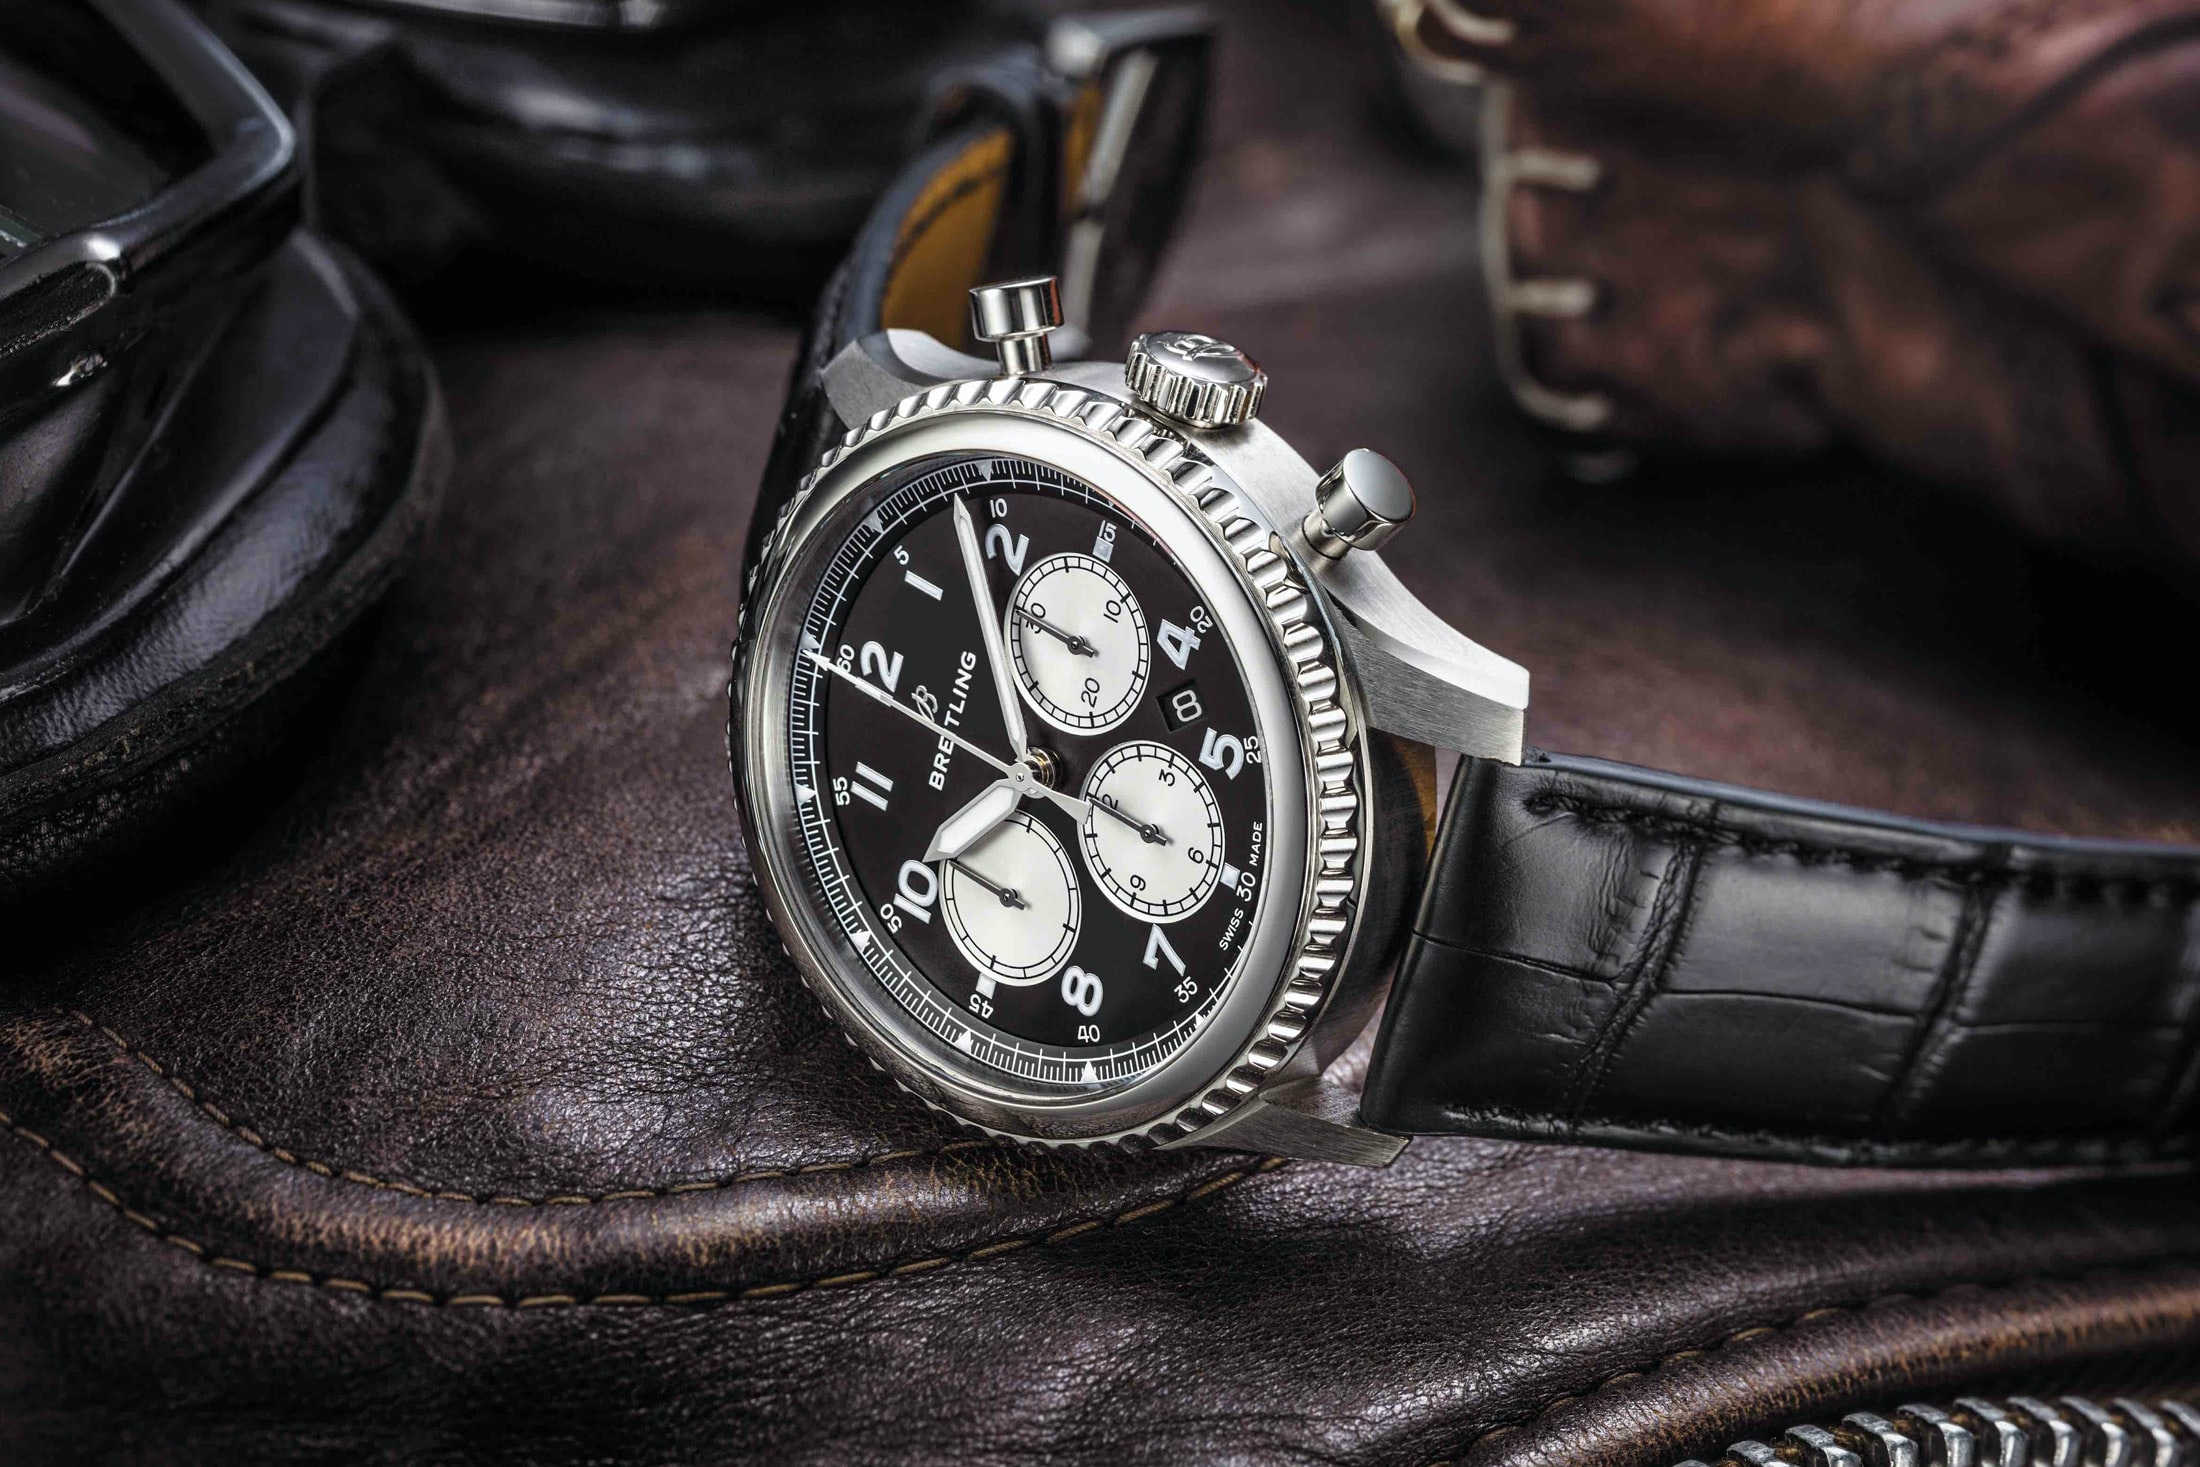 Introducing: The Breitling Navitimer 8 B01 Introducing: The Breitling Navitimer 8 B01 b01 1